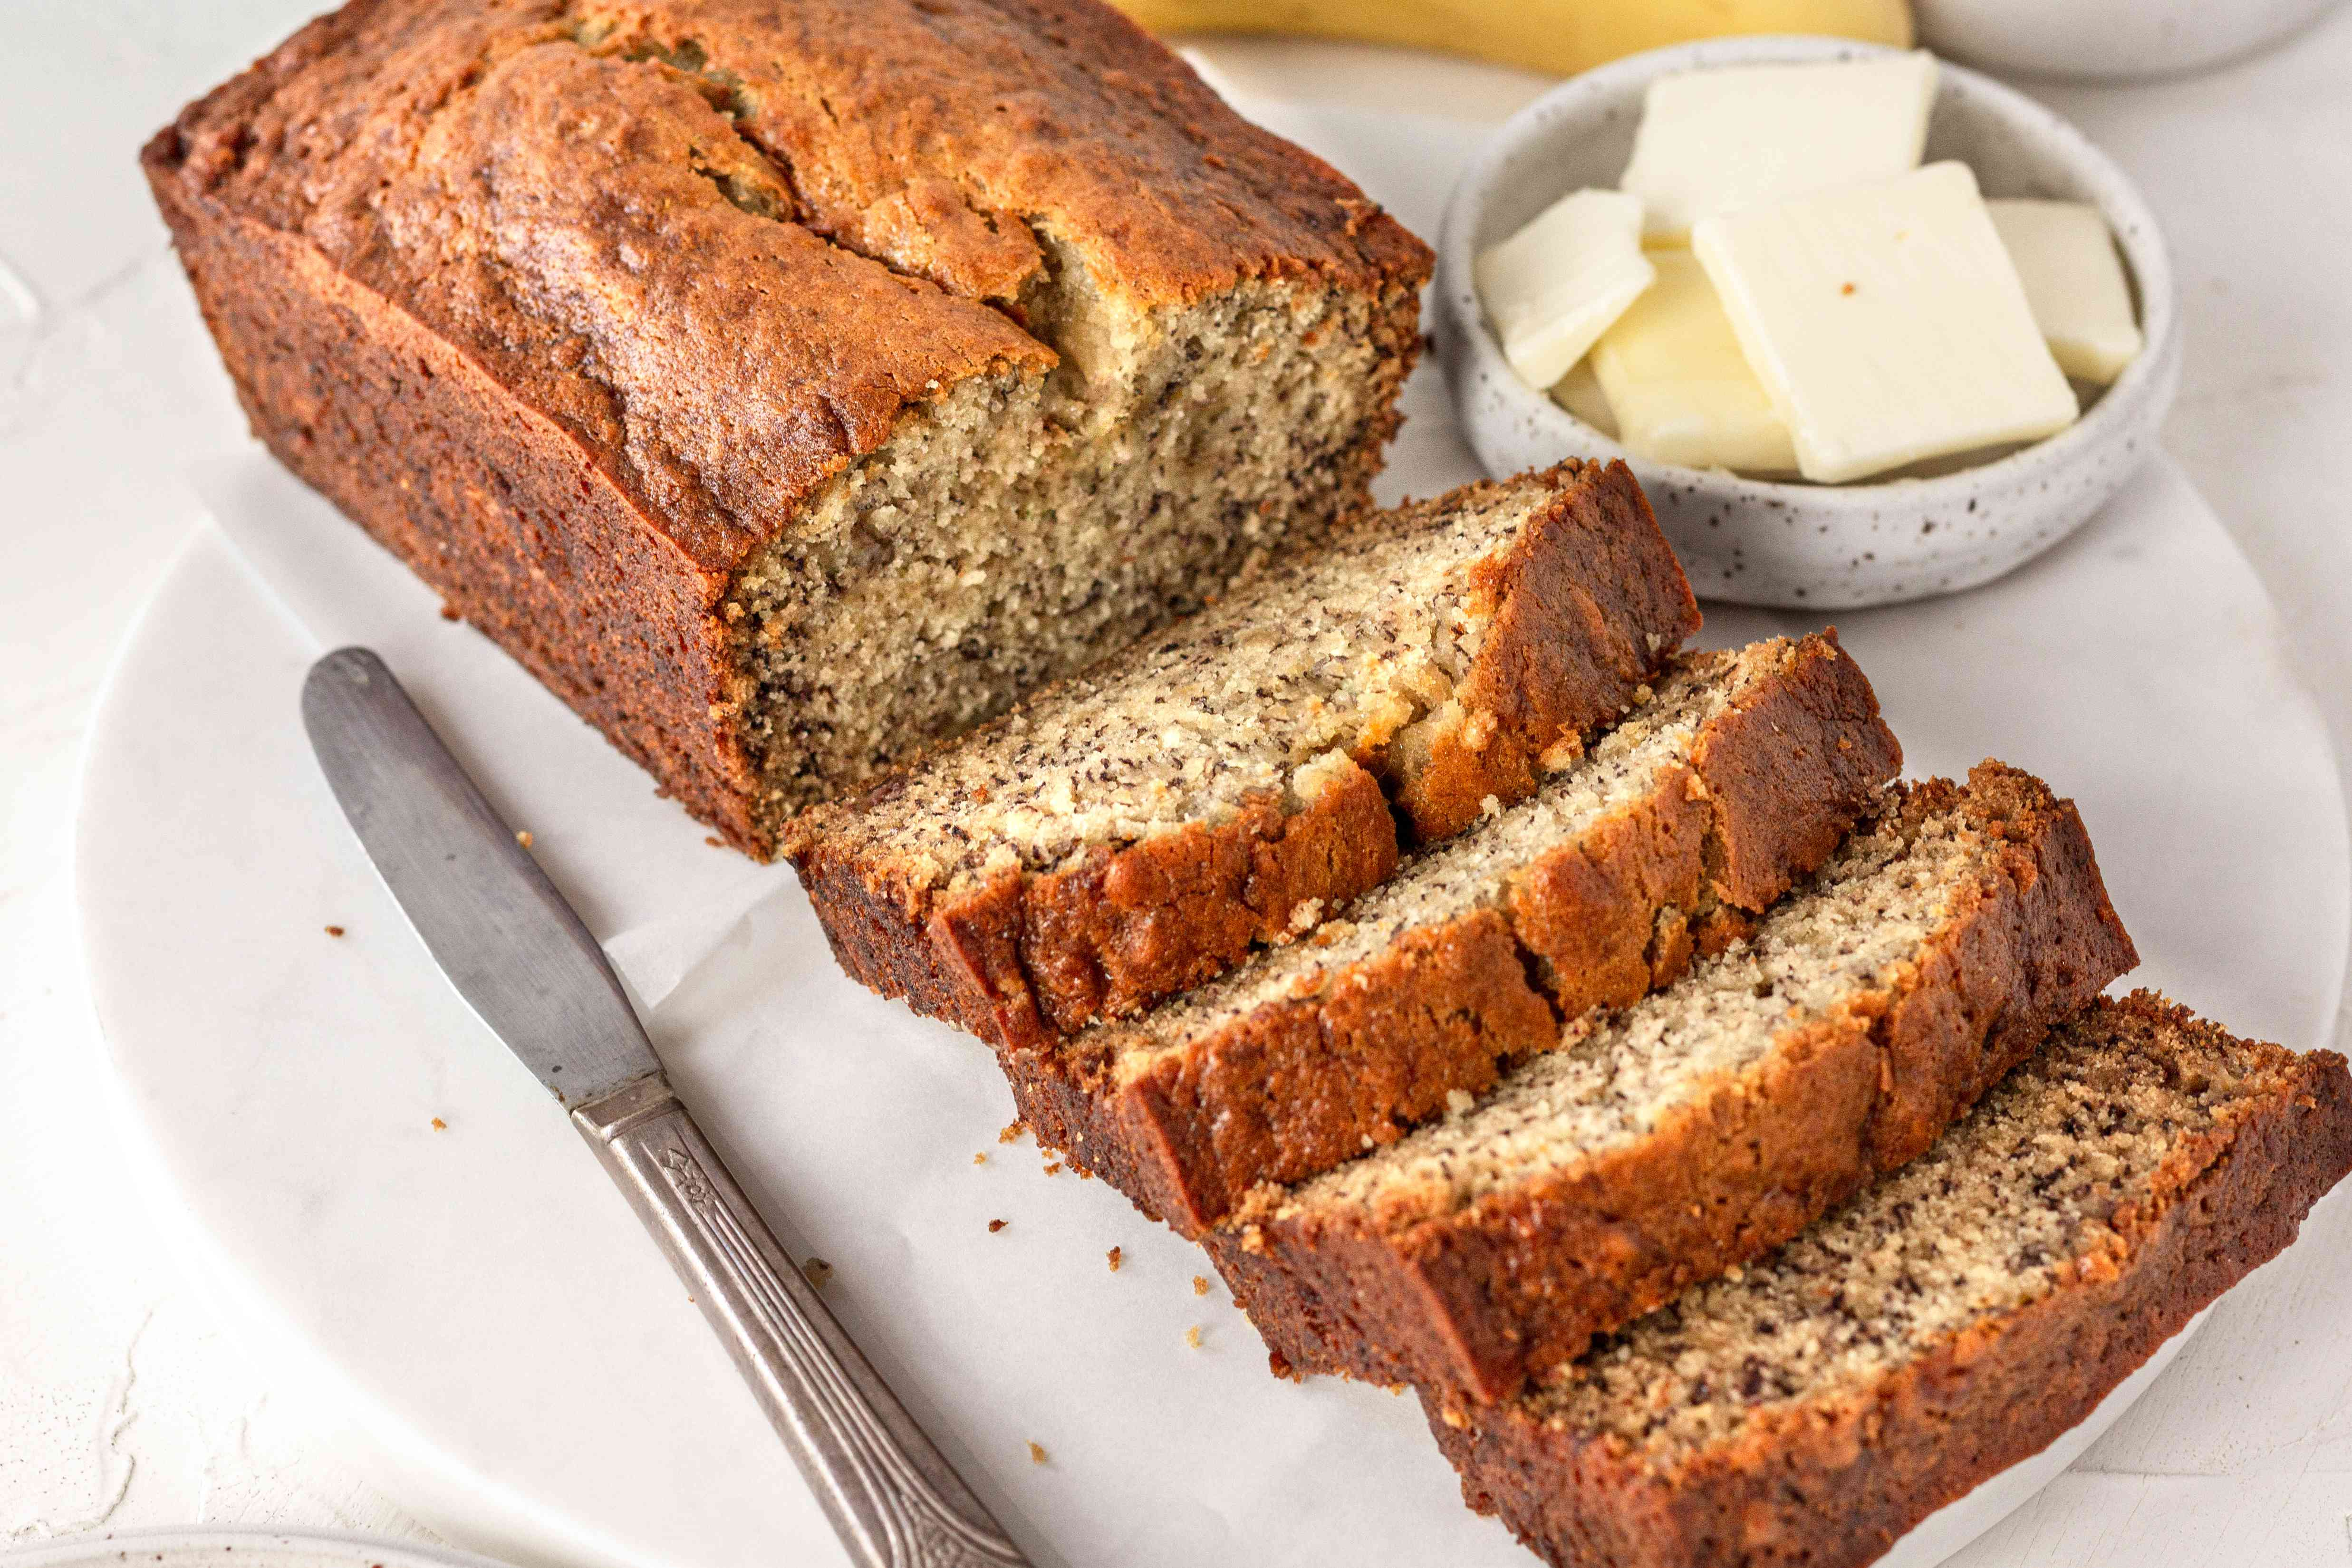 Easy banana bread cut into thick slices.